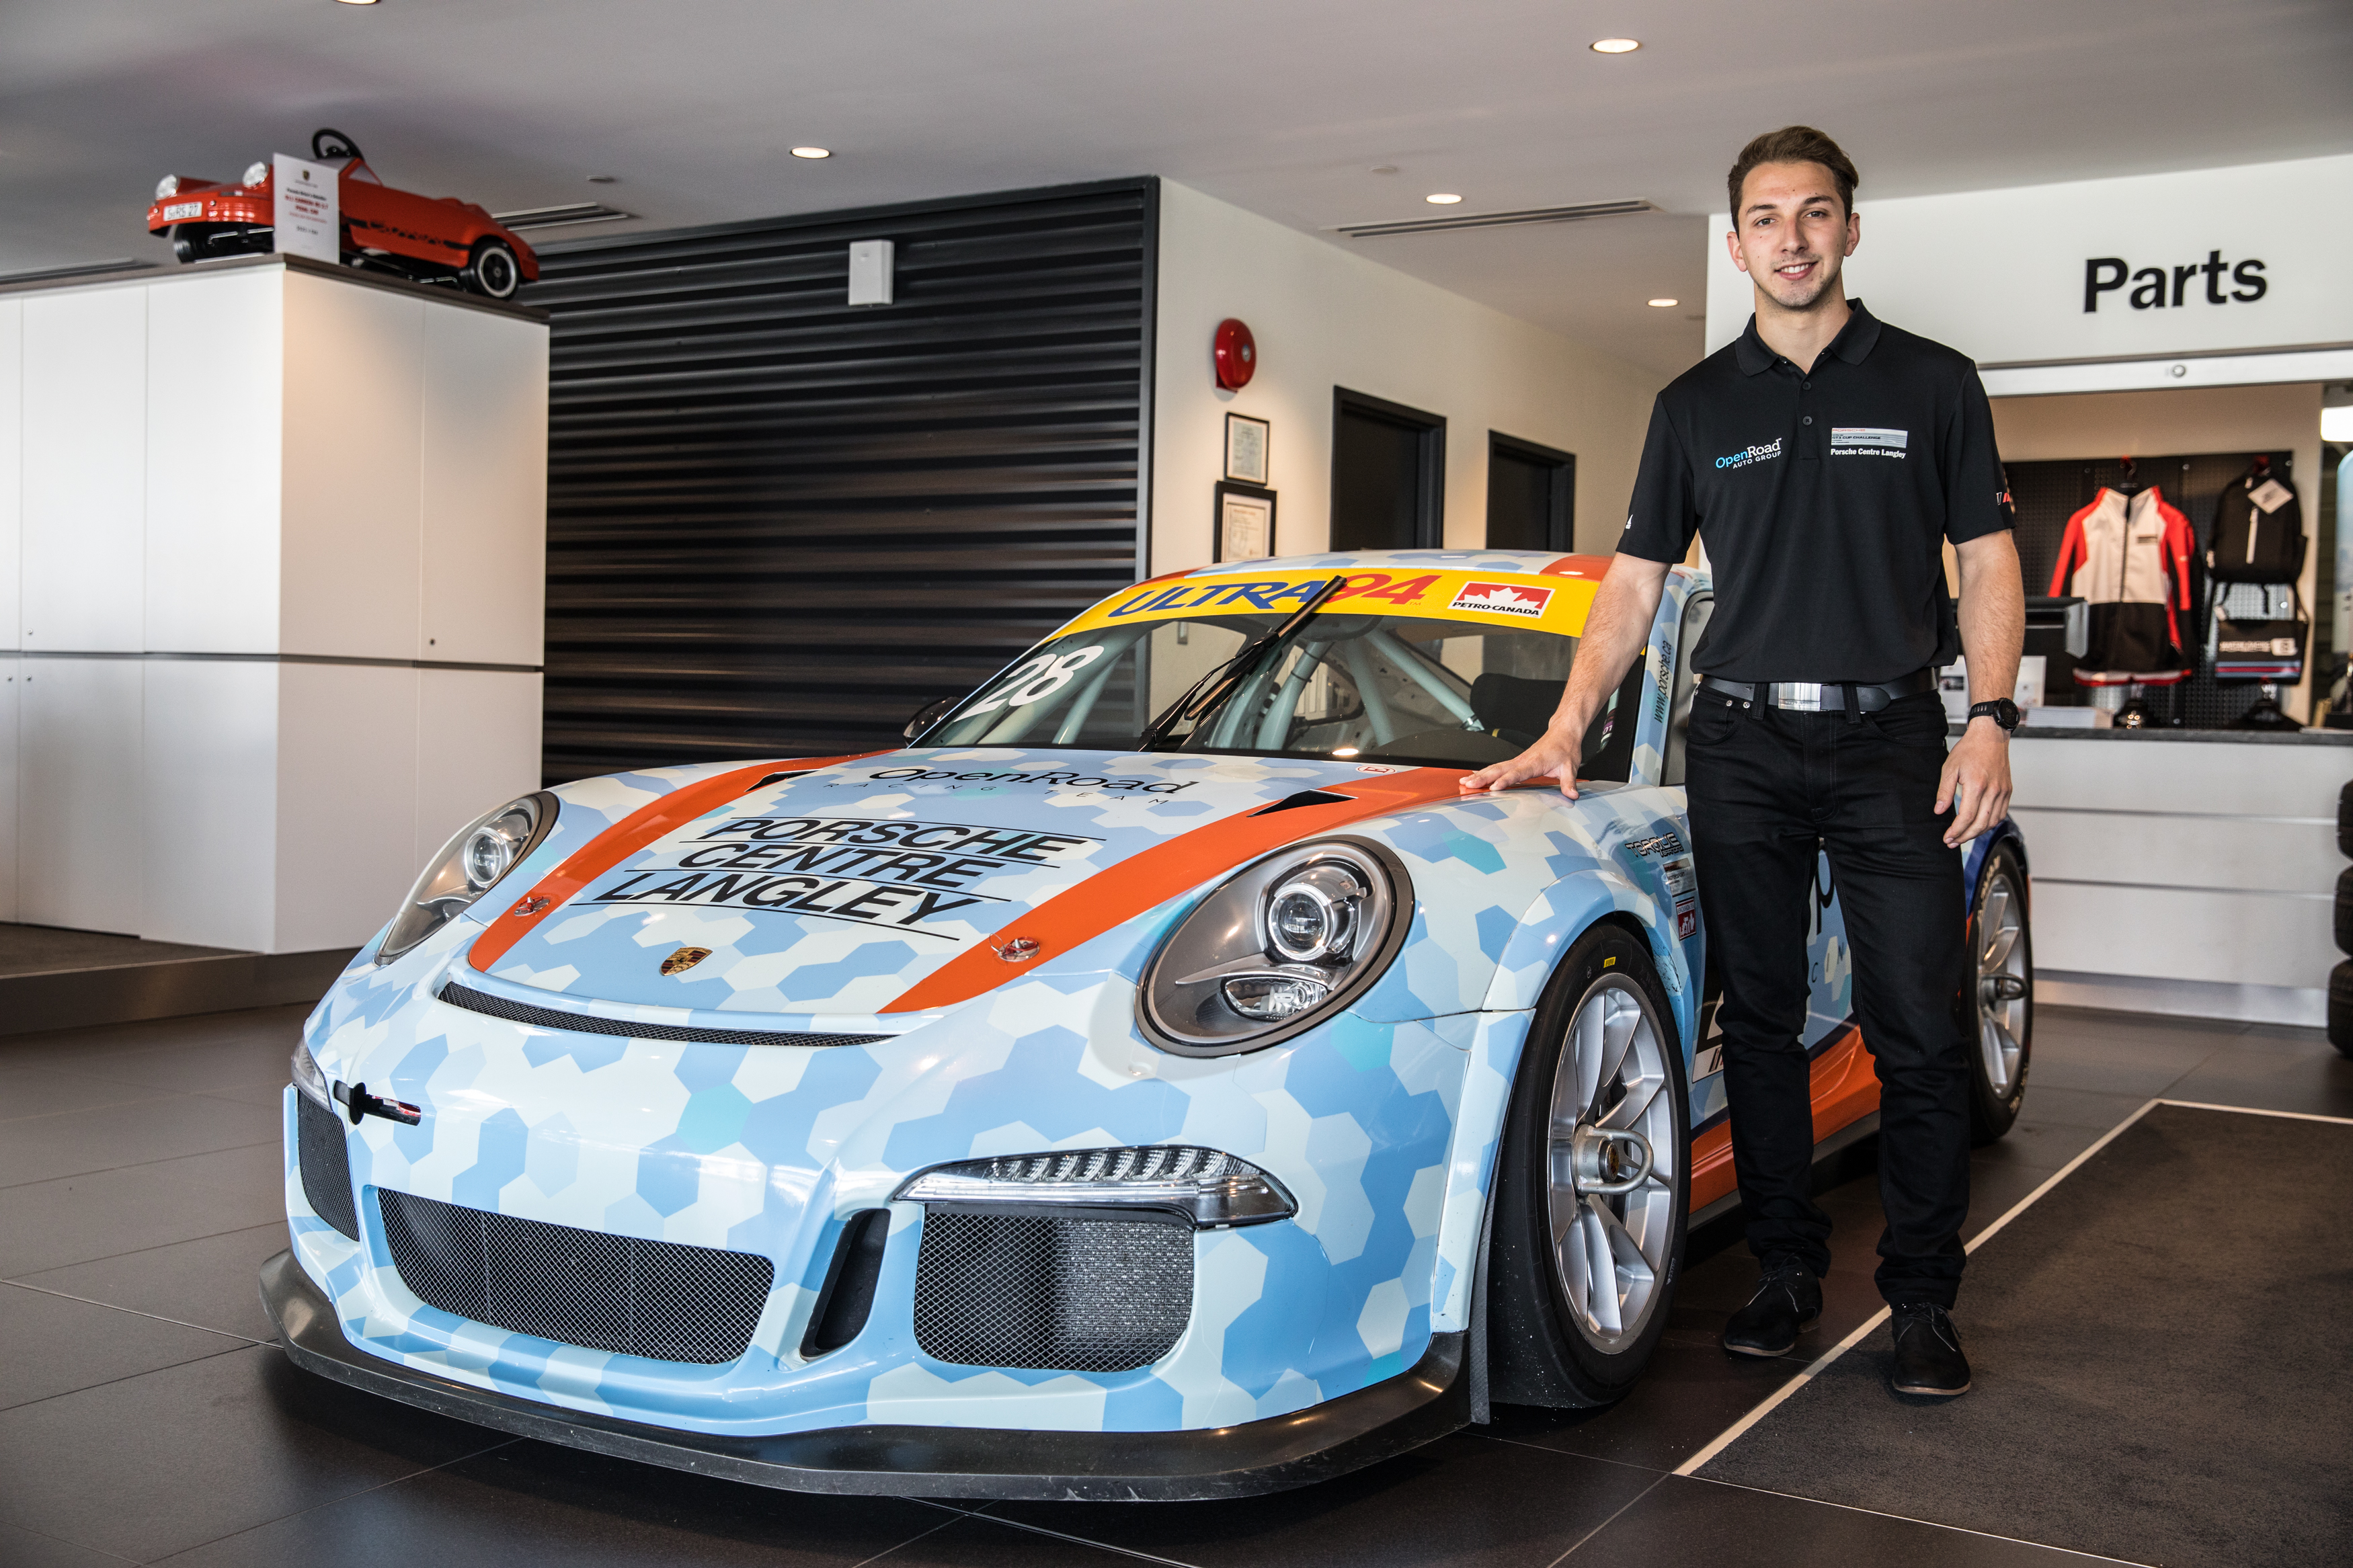 Ruscitti Joins OpenRoad Racing for 2017 Porsche GT3 Cup Canada Championship